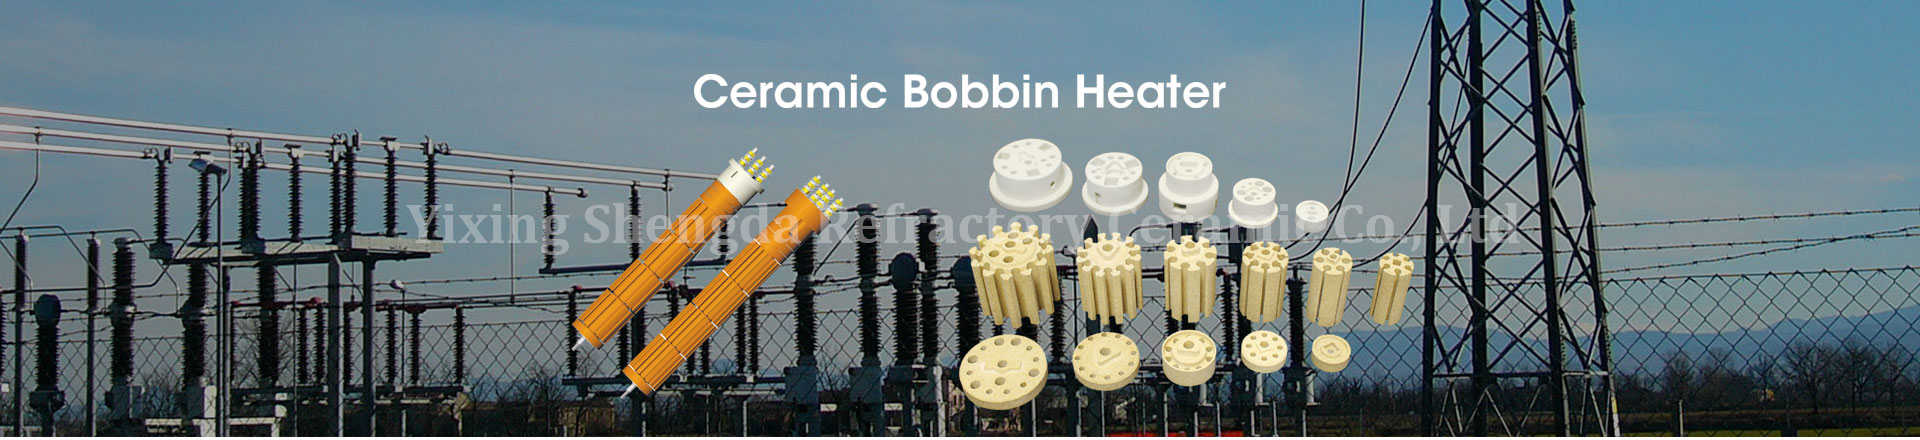 Ceramic Bobbin Heater